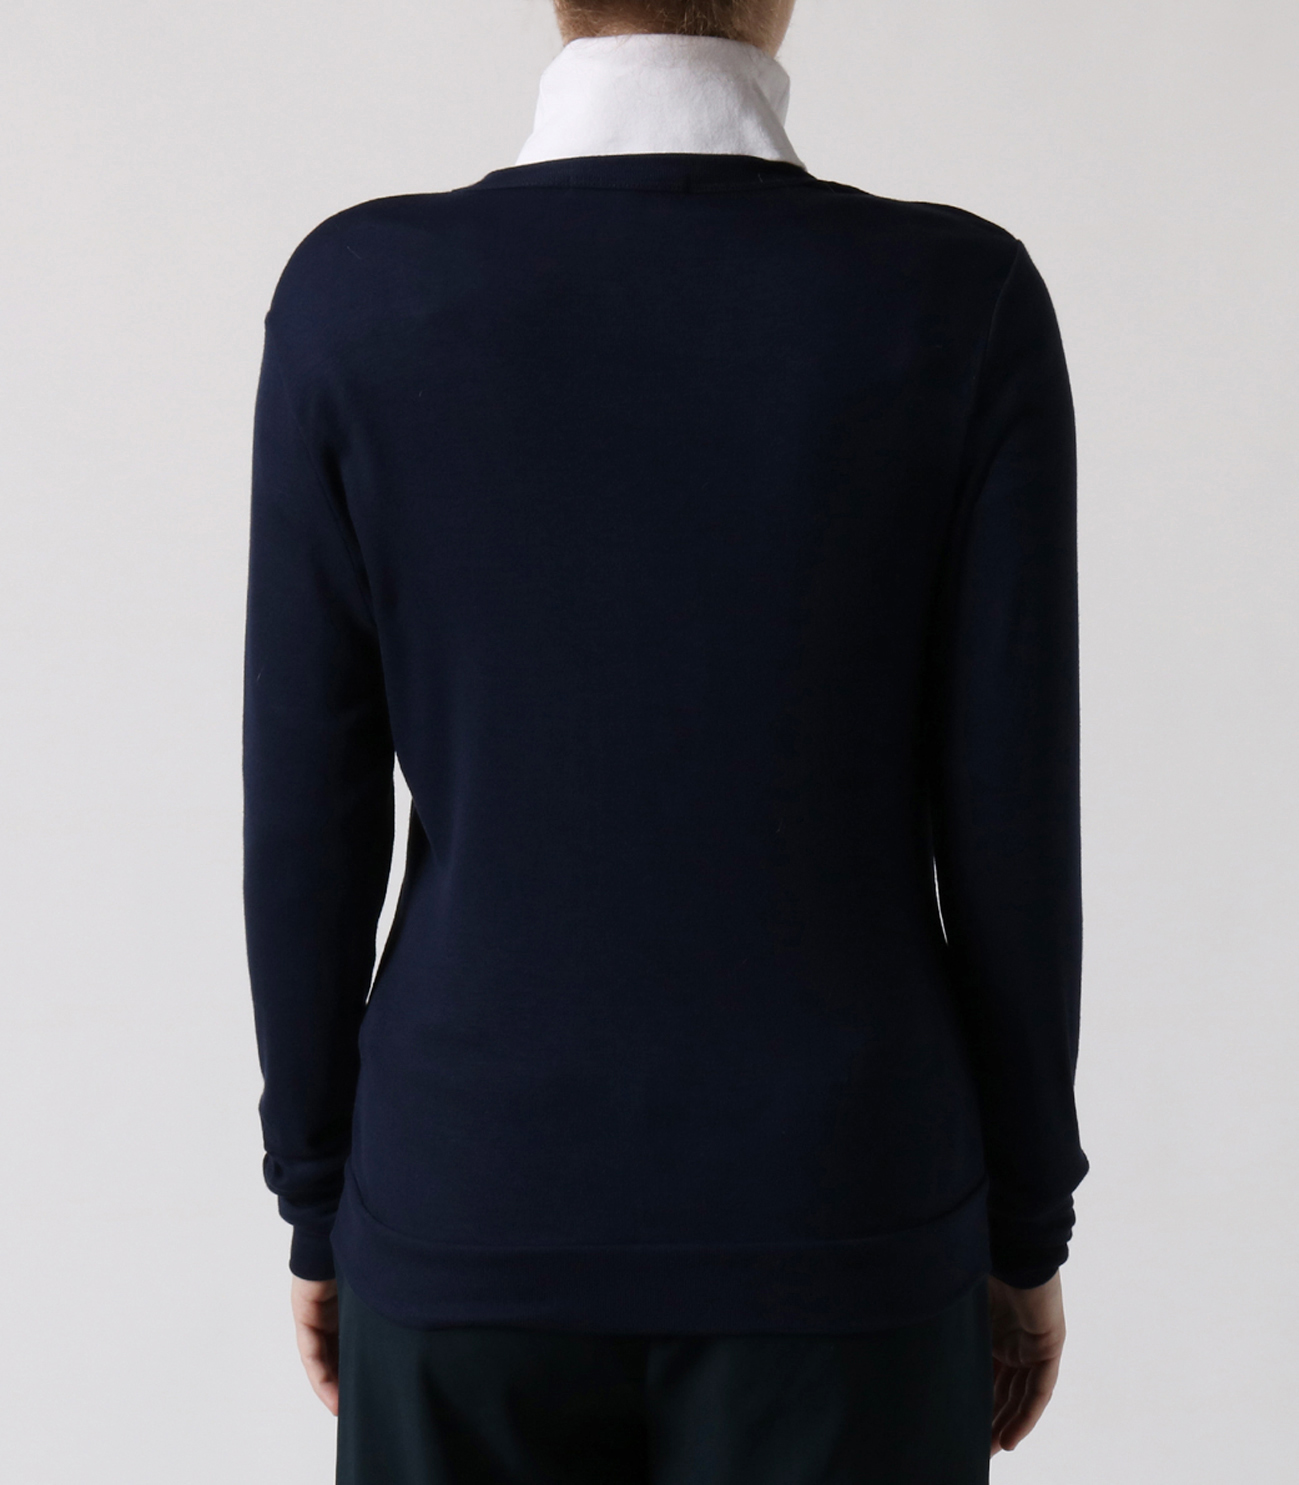 luxe rib button up cardigan 詳細画像 night iris 4